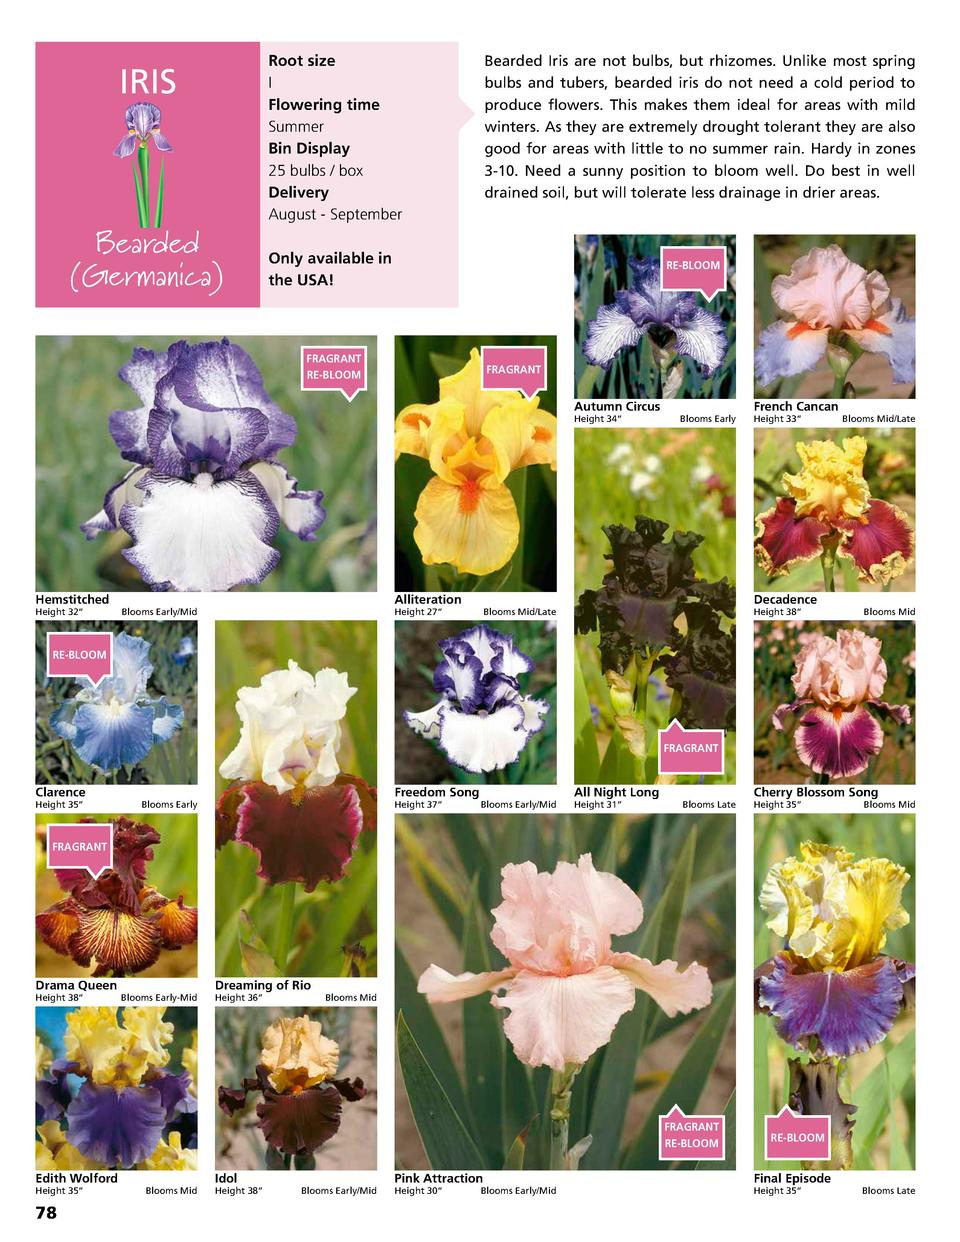 Root size I Flowering time Summer Bin Display 25 bulbs   box Delivery August - September  IRIS  Bearded  Germanica   Beard...